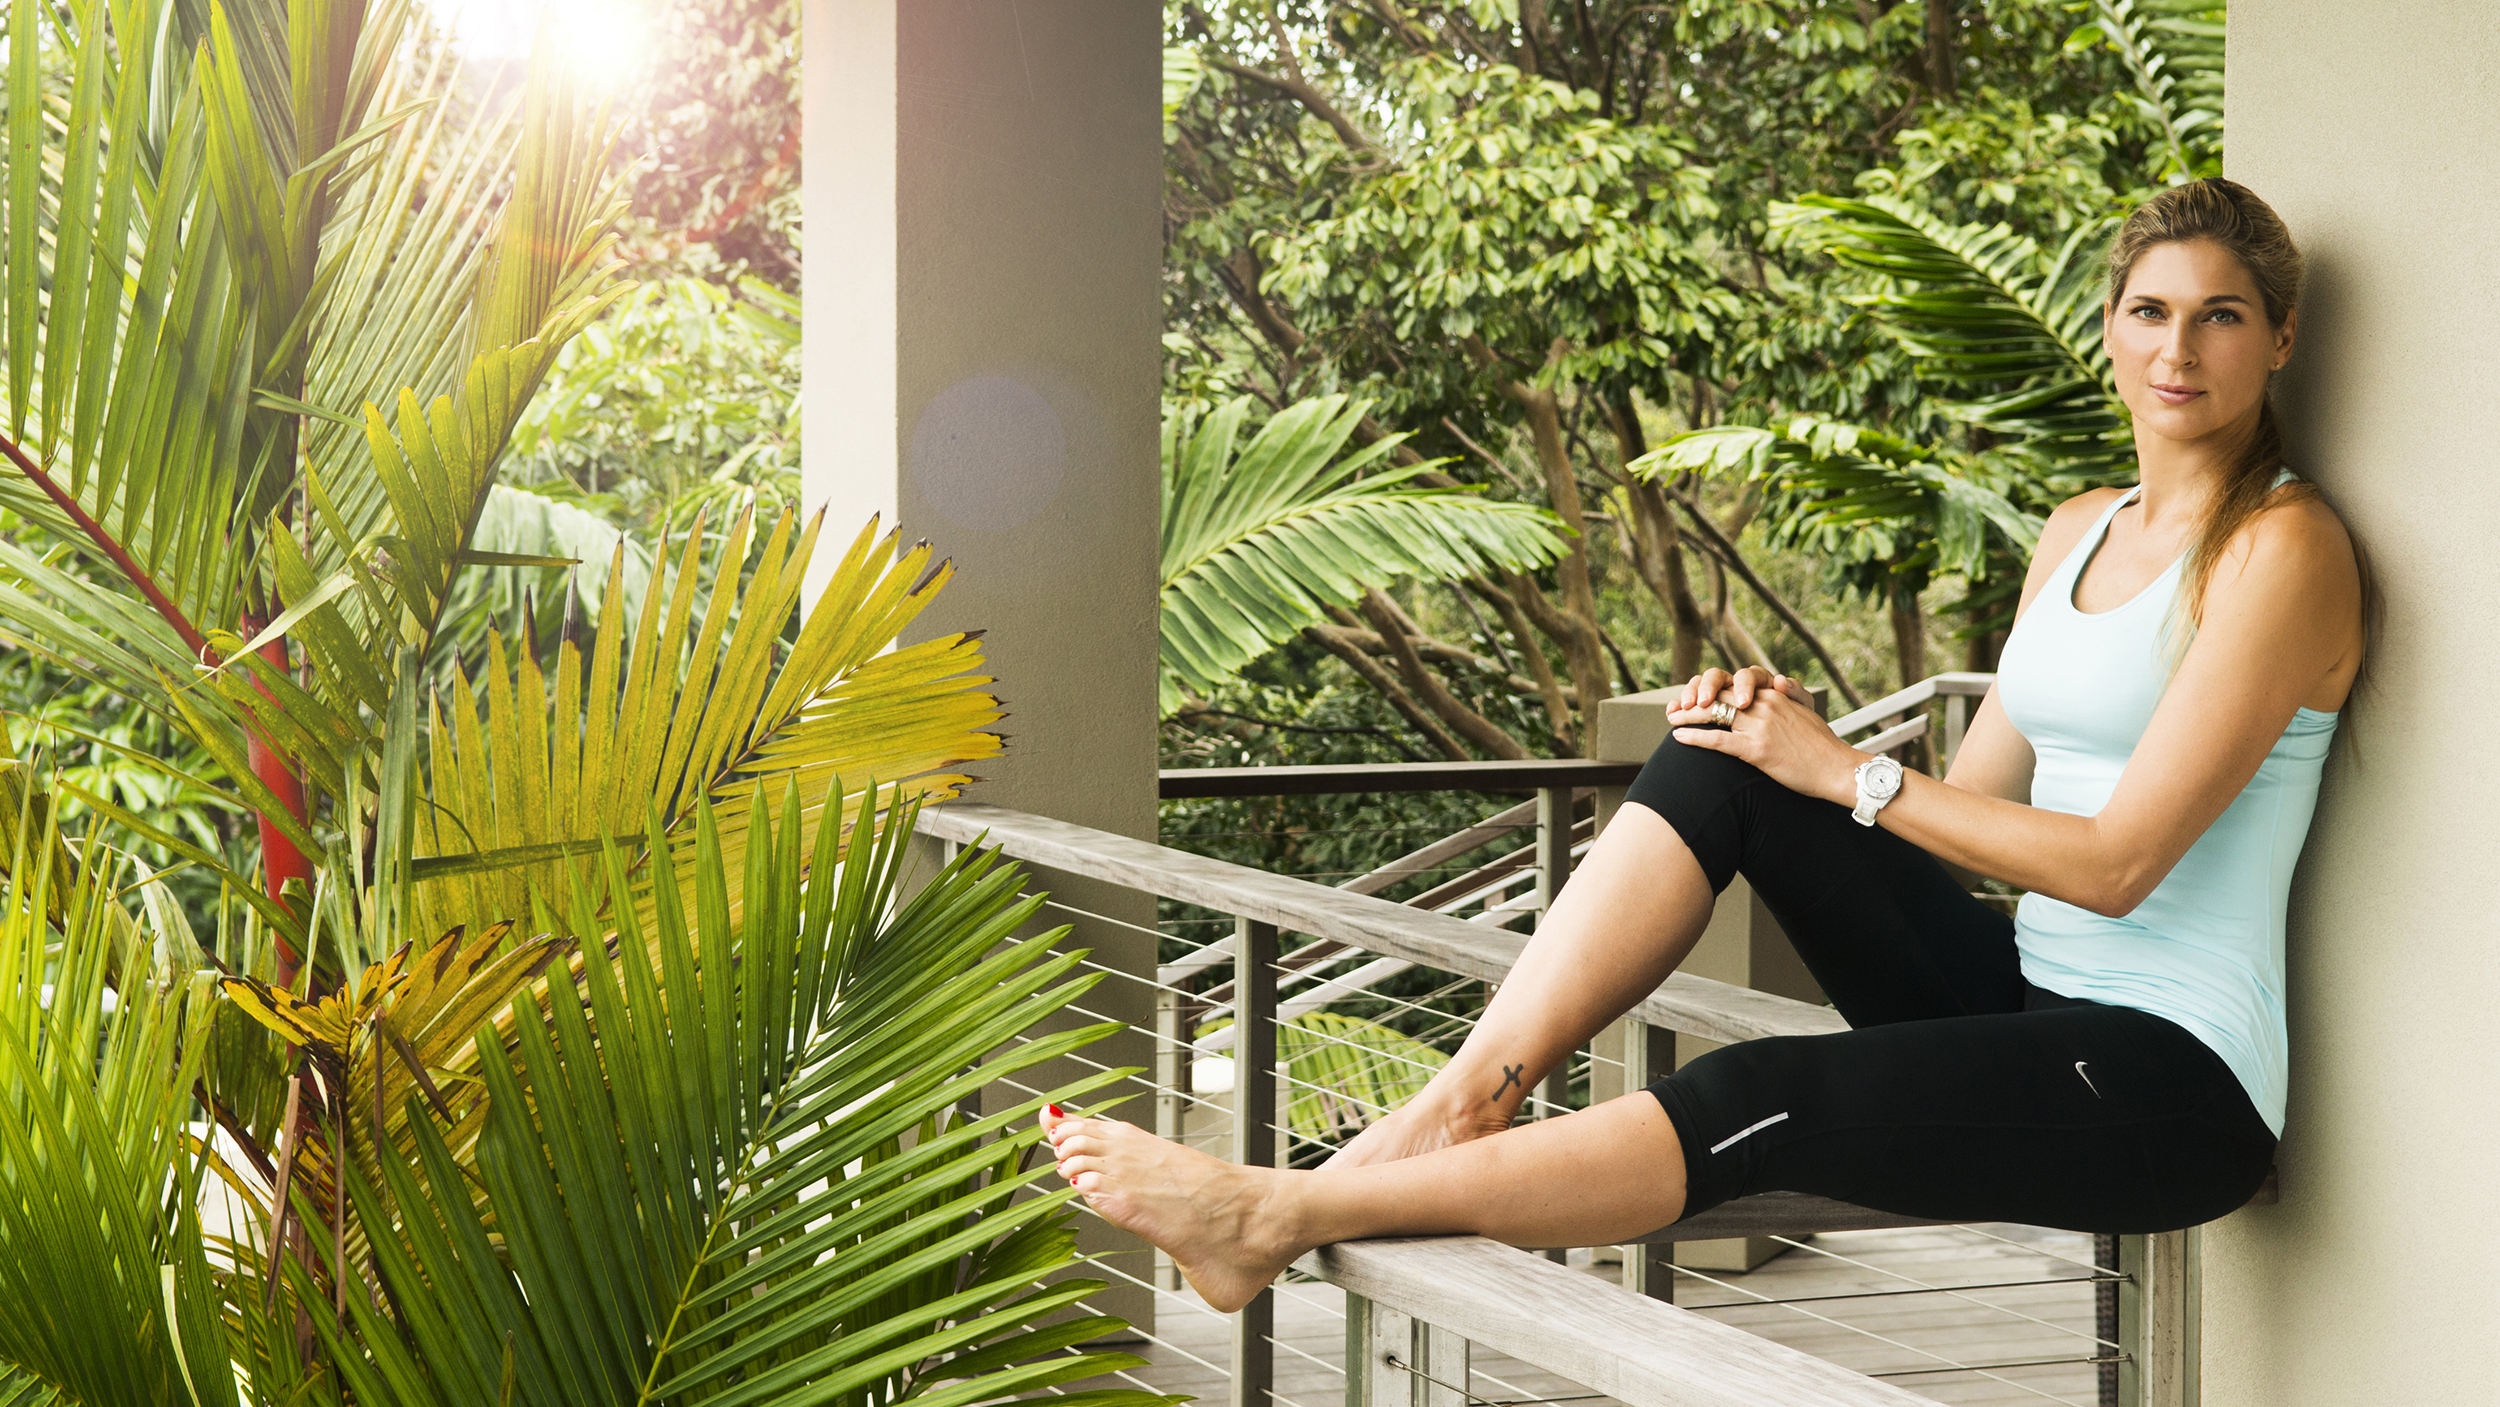 Gabrielle Reece on fitness, parenting and more